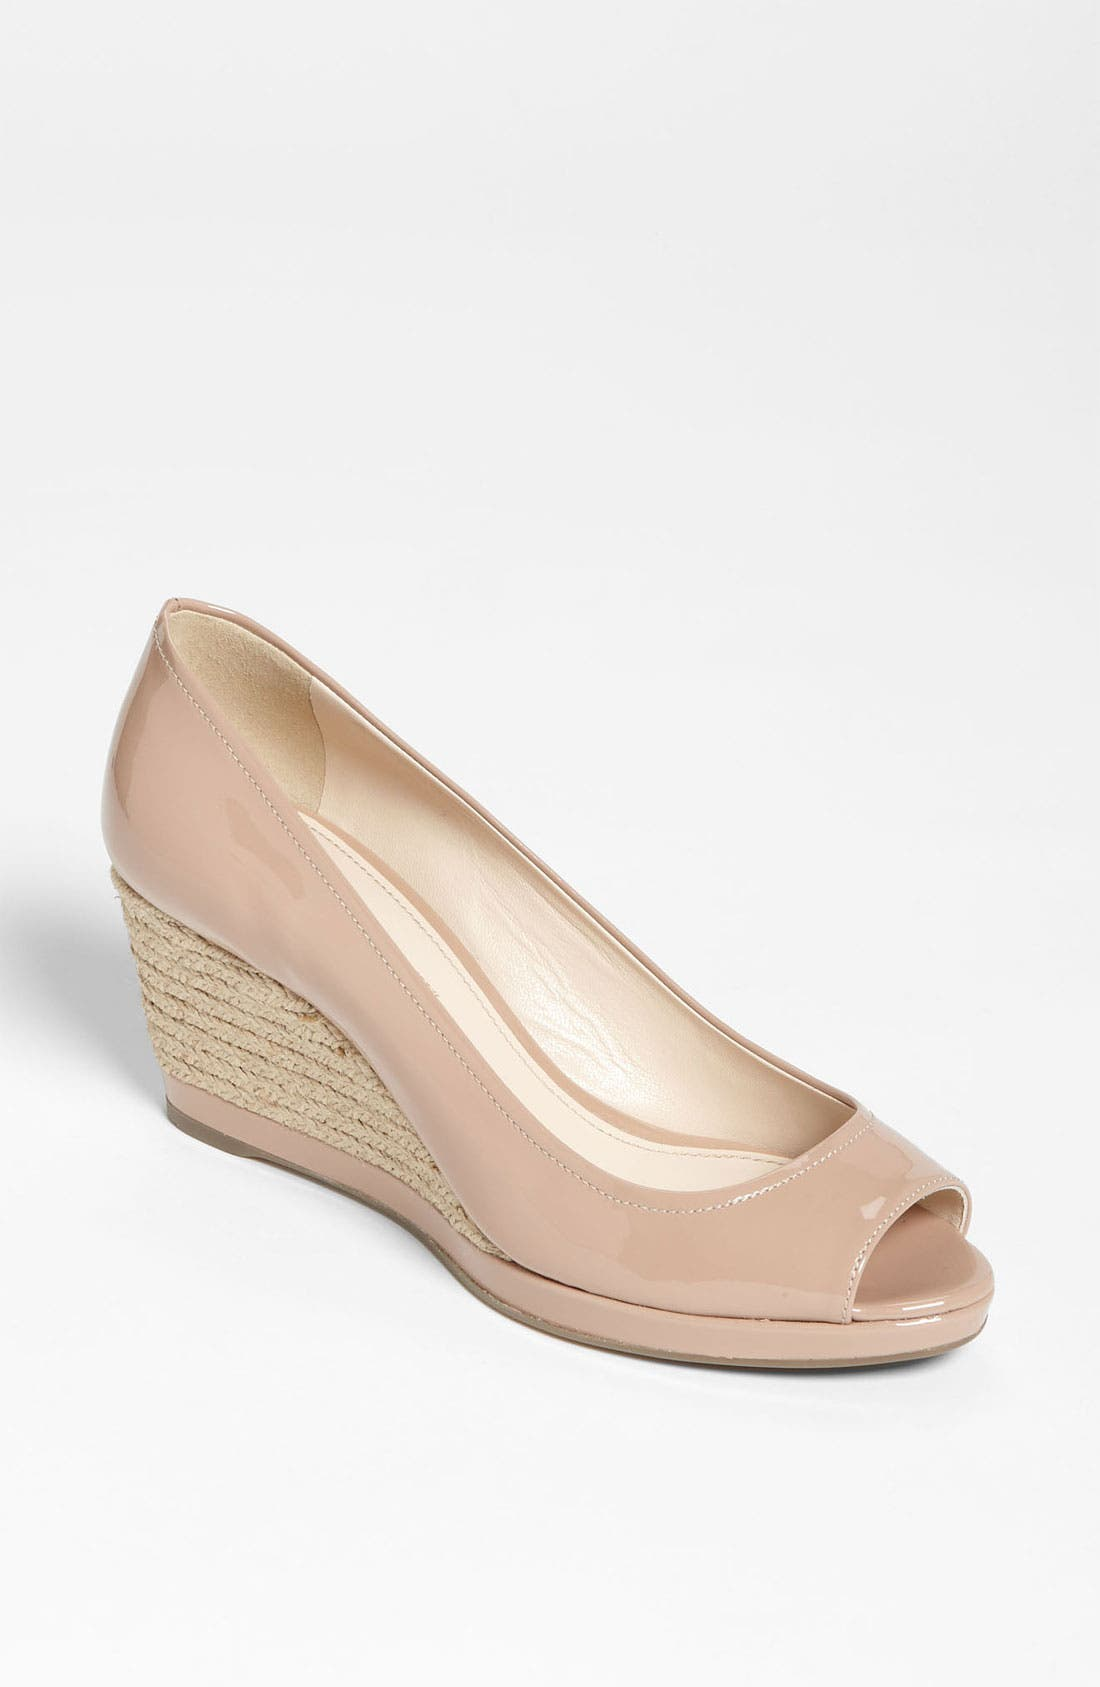 Main Image - Prada Wedge Pump